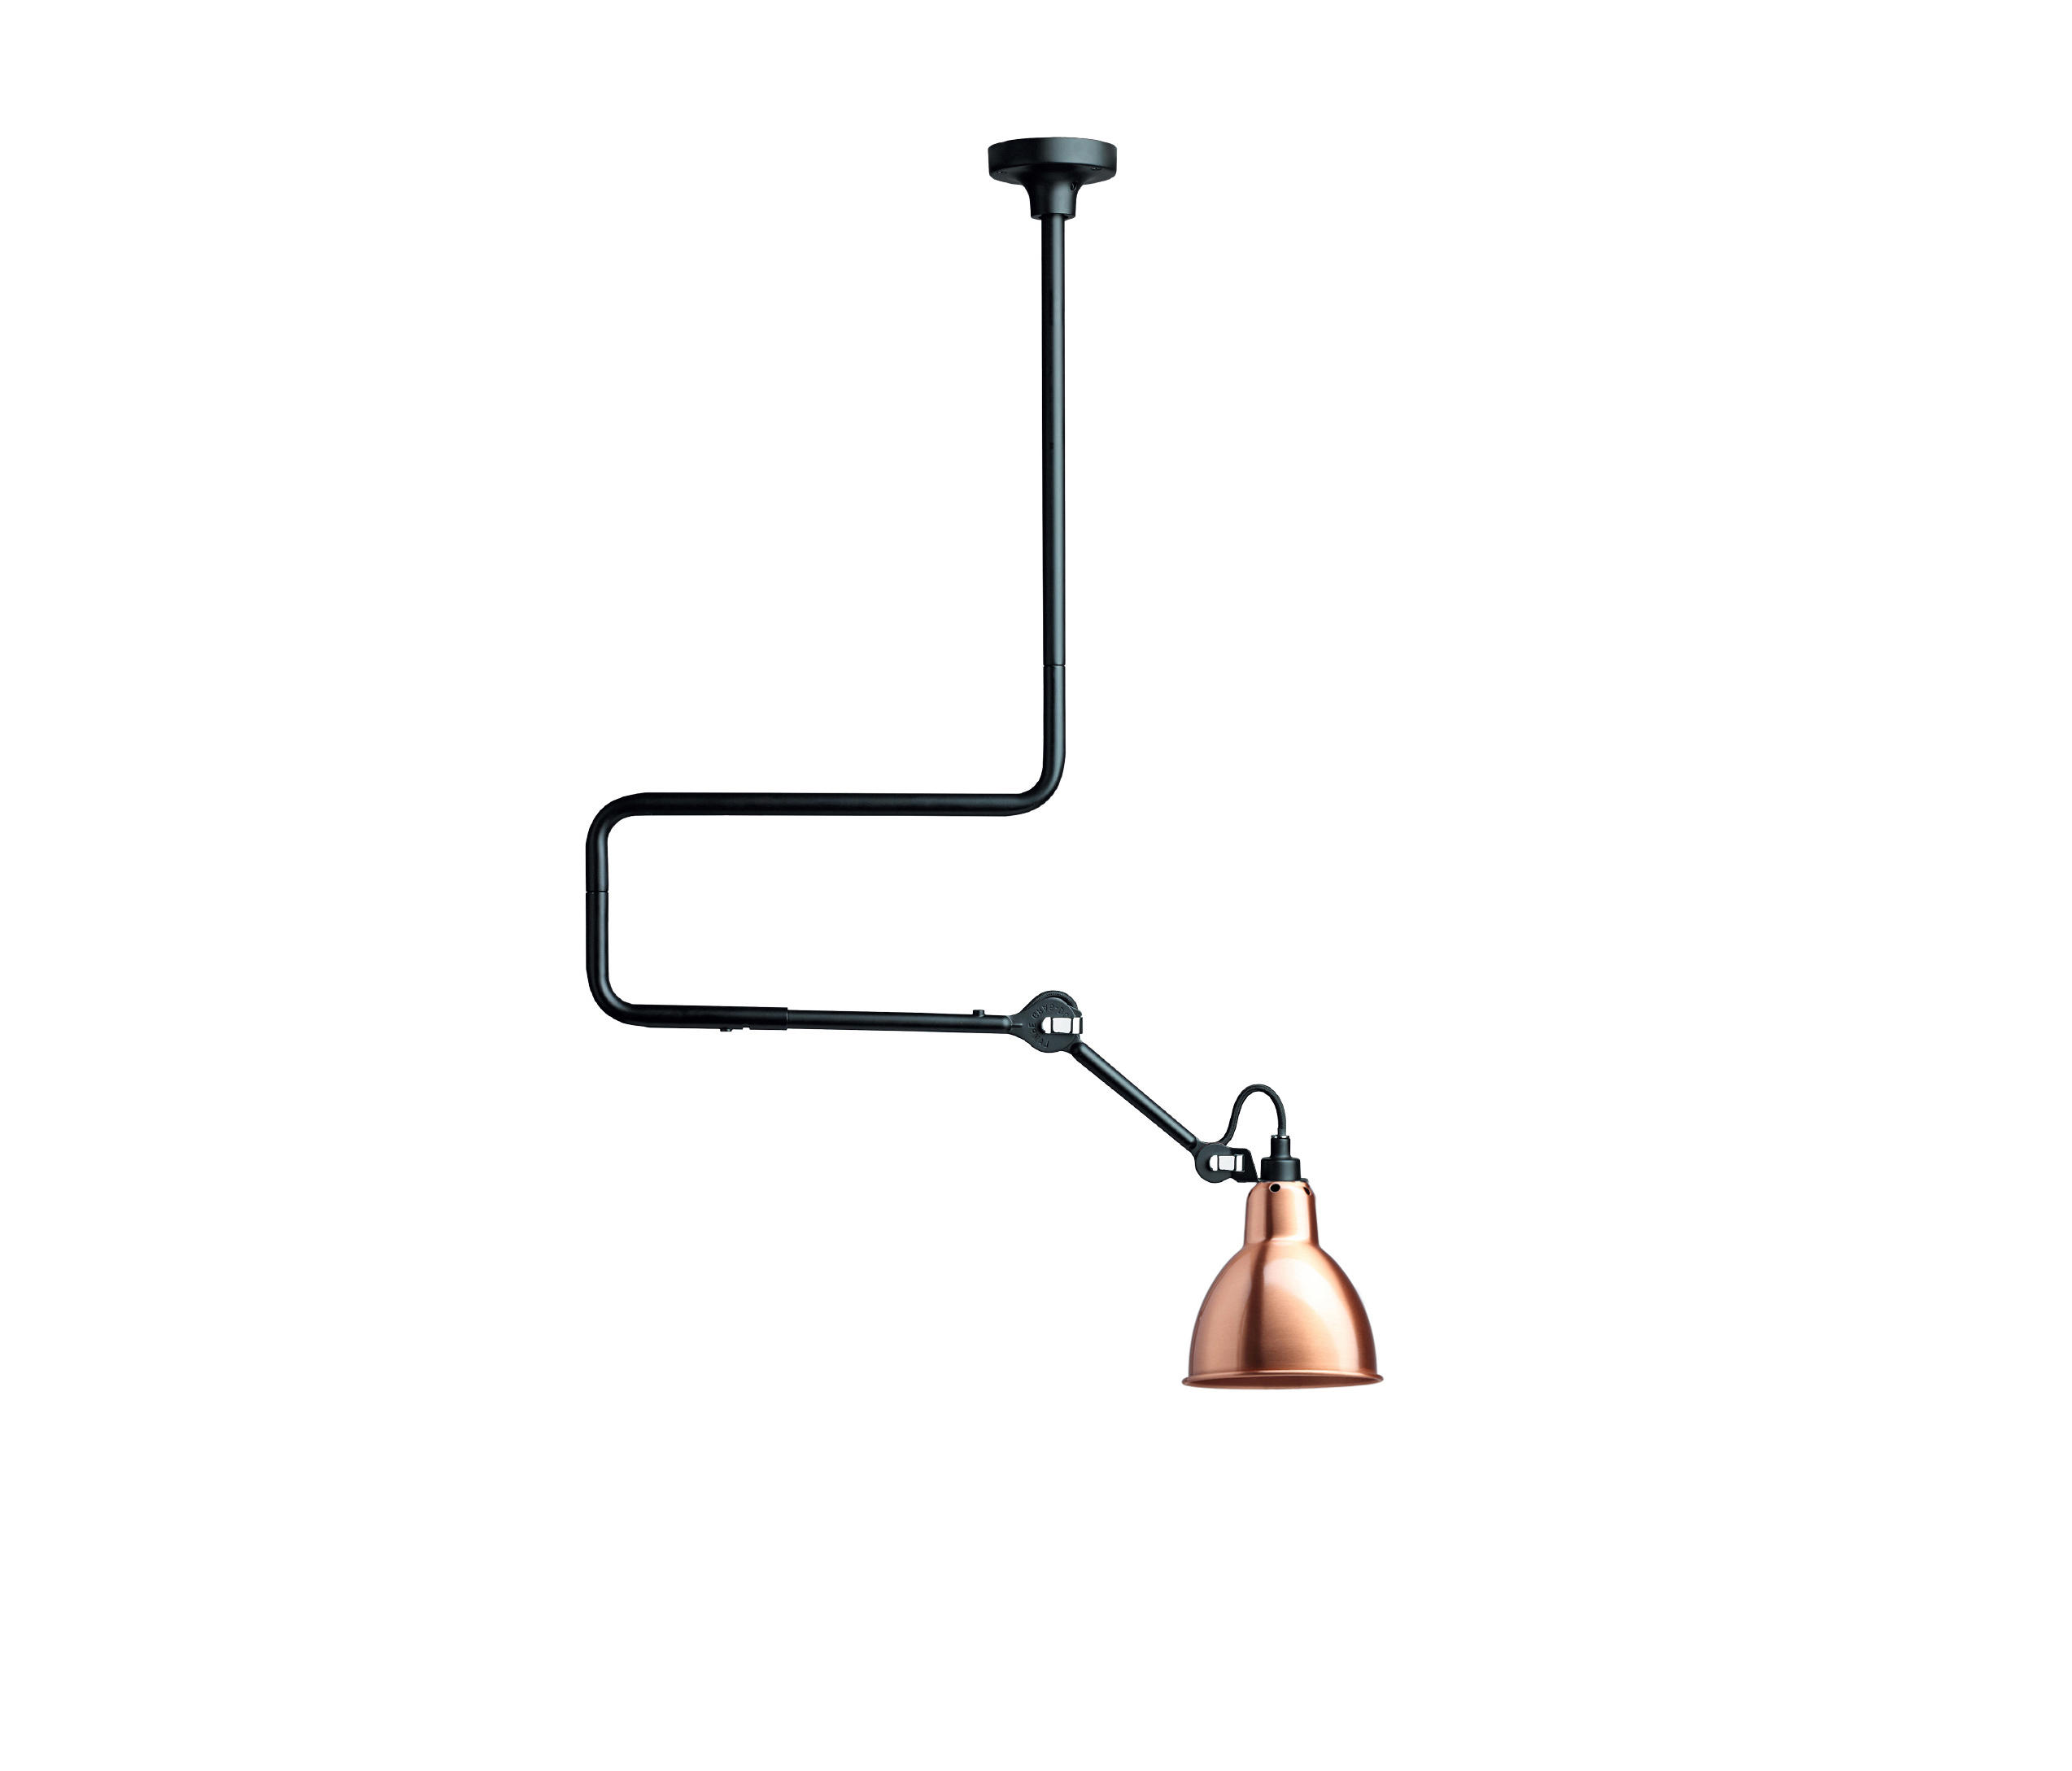 lampe gras n 312 copper general lighting from dcw ditions architonic. Black Bedroom Furniture Sets. Home Design Ideas